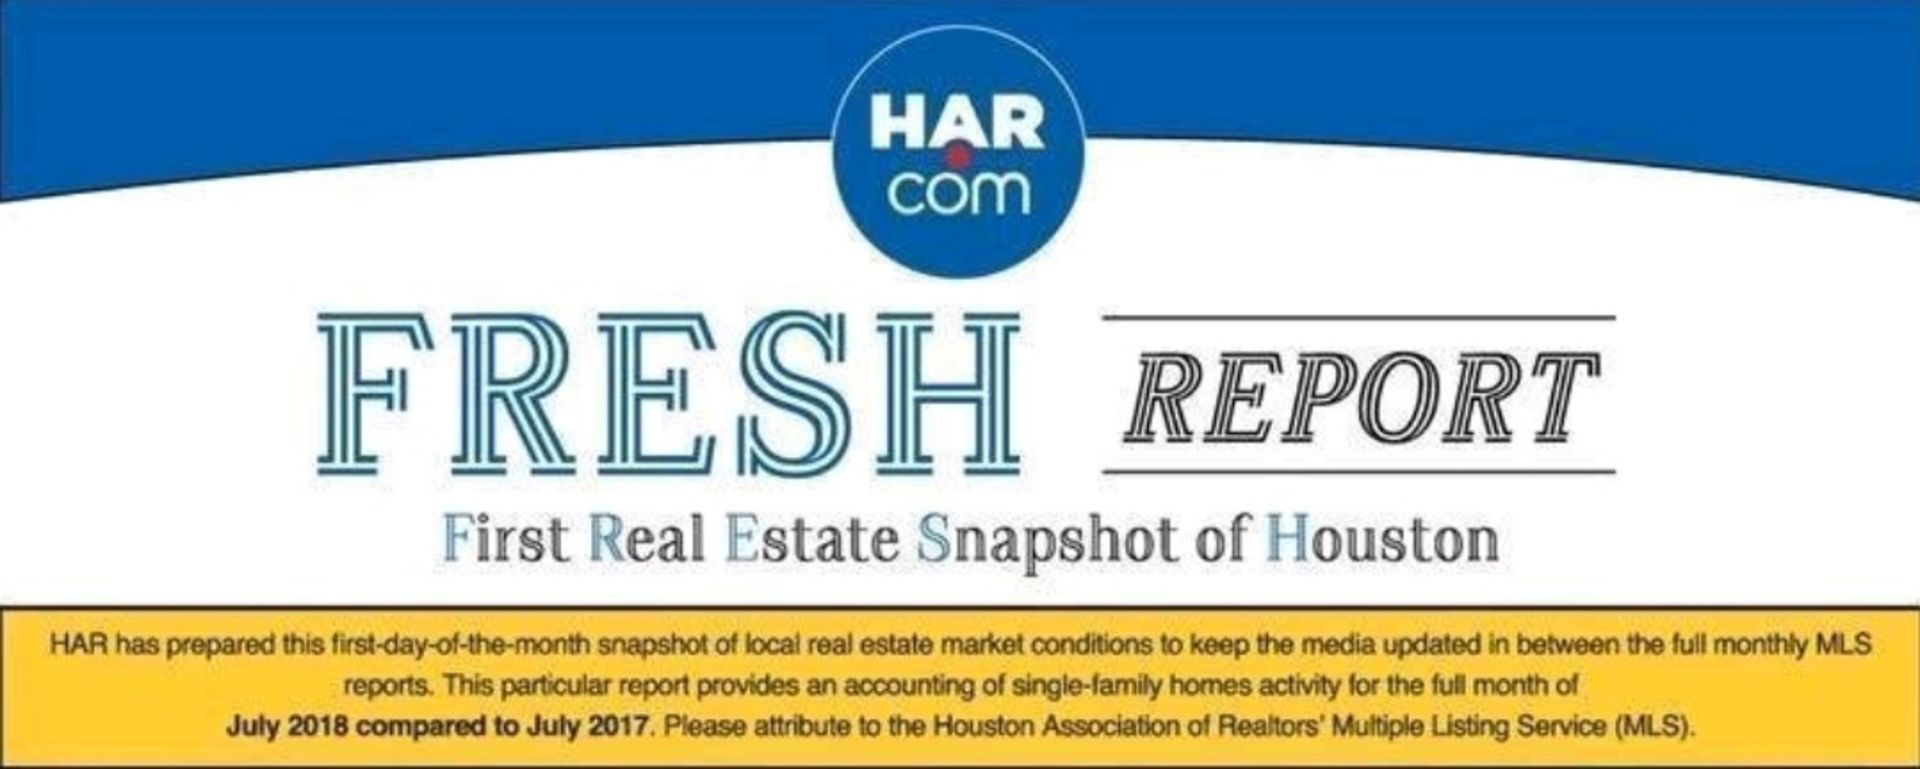 Houston Real Estate Snapshot for July 2018